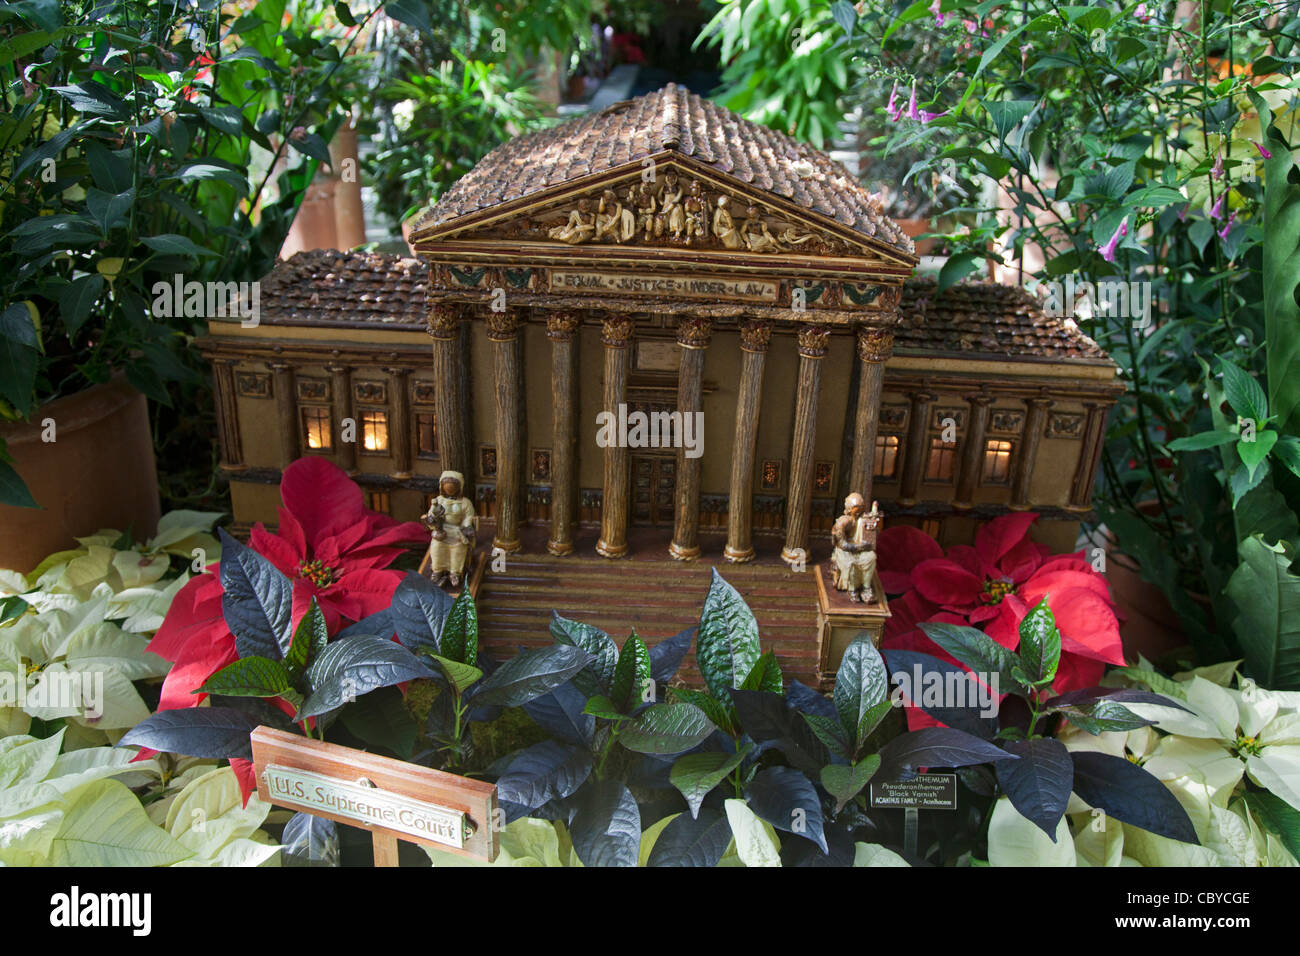 A model of the U.S. Supreme Court made of dried plant materials at the U.S. Botanic Garden - Stock Image